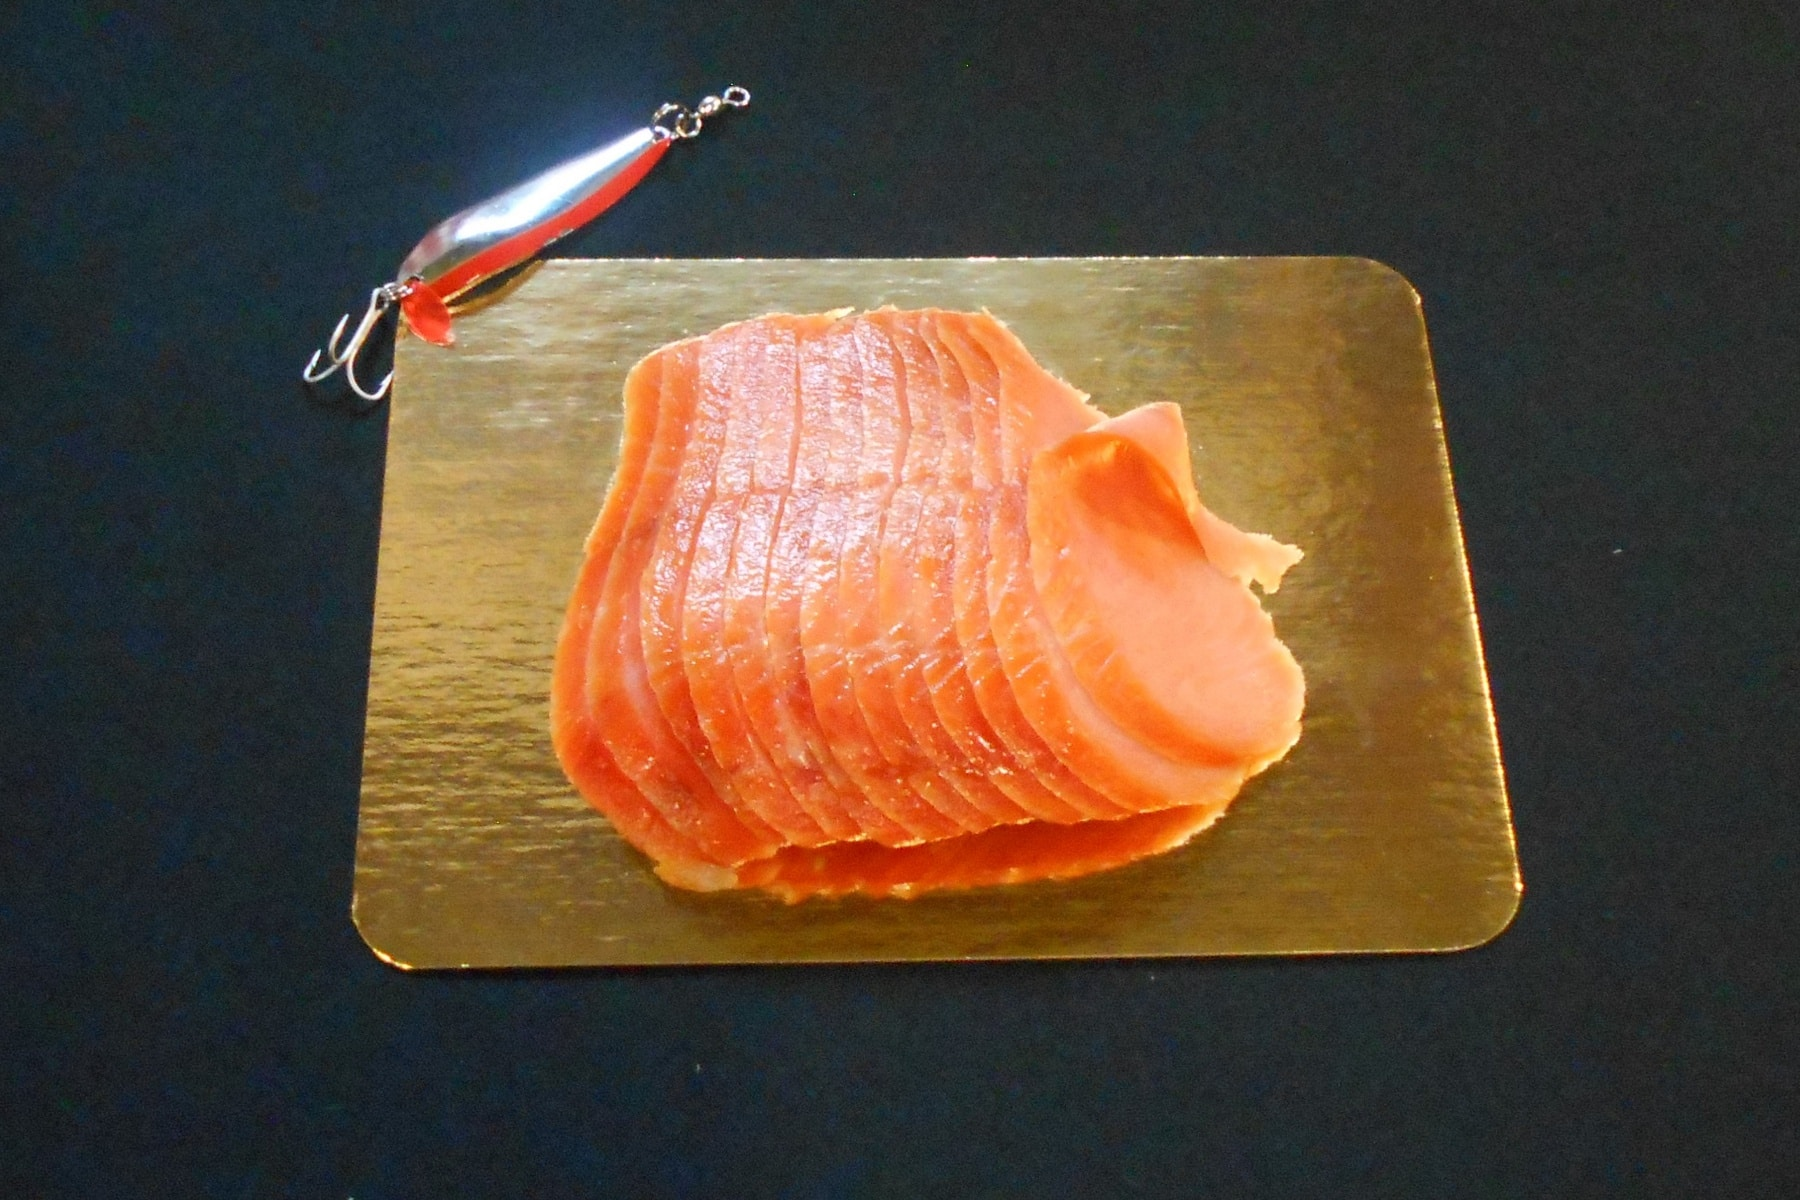 5 oz of Sliced Lox Sockeye on Gold Display Board